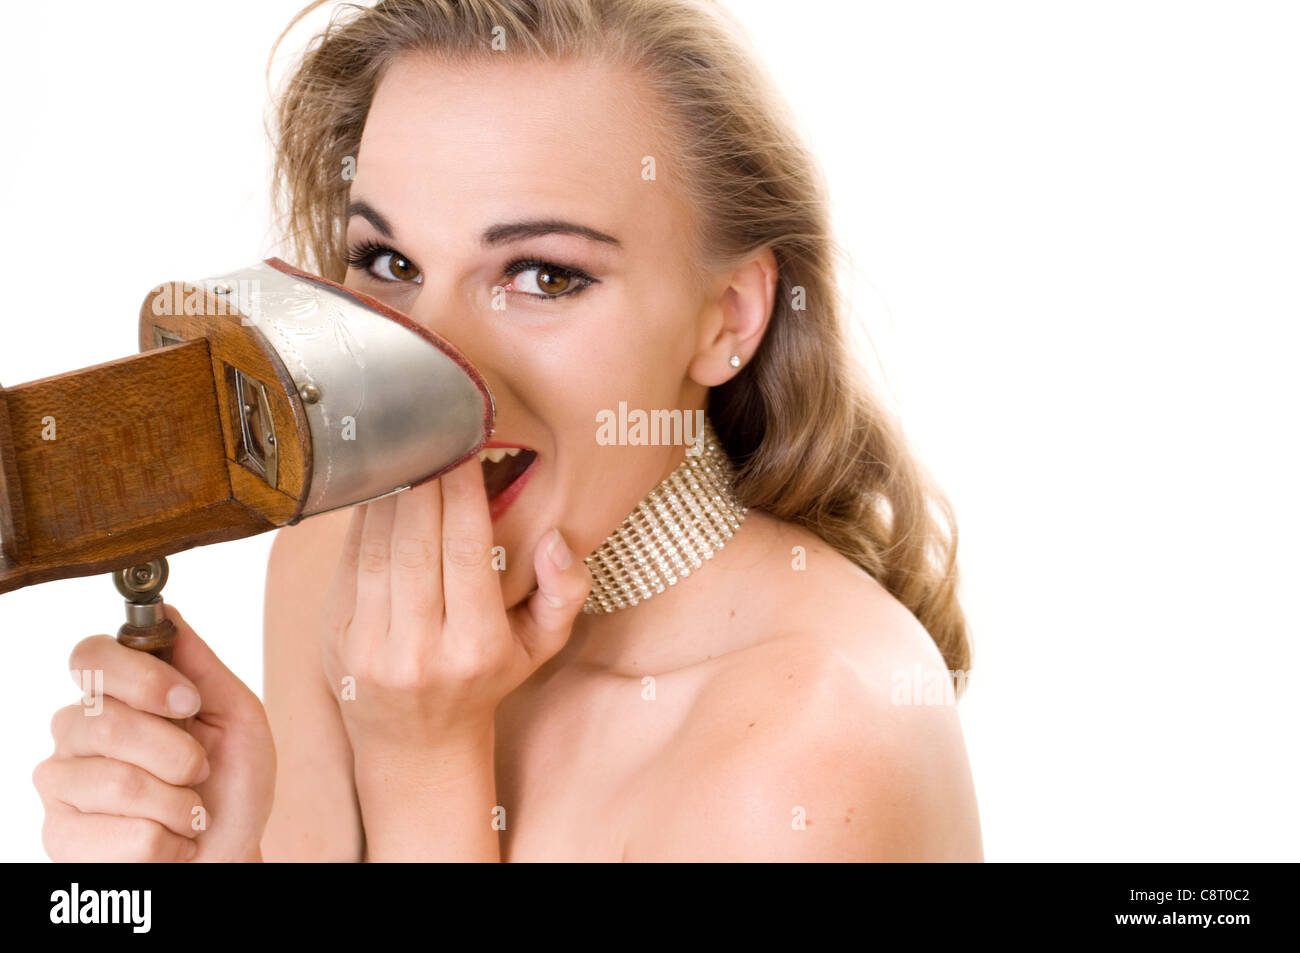 Beautiful Model Cracking Up at a 3D Image Through a 19th Century Stereopticon. - Stock Image